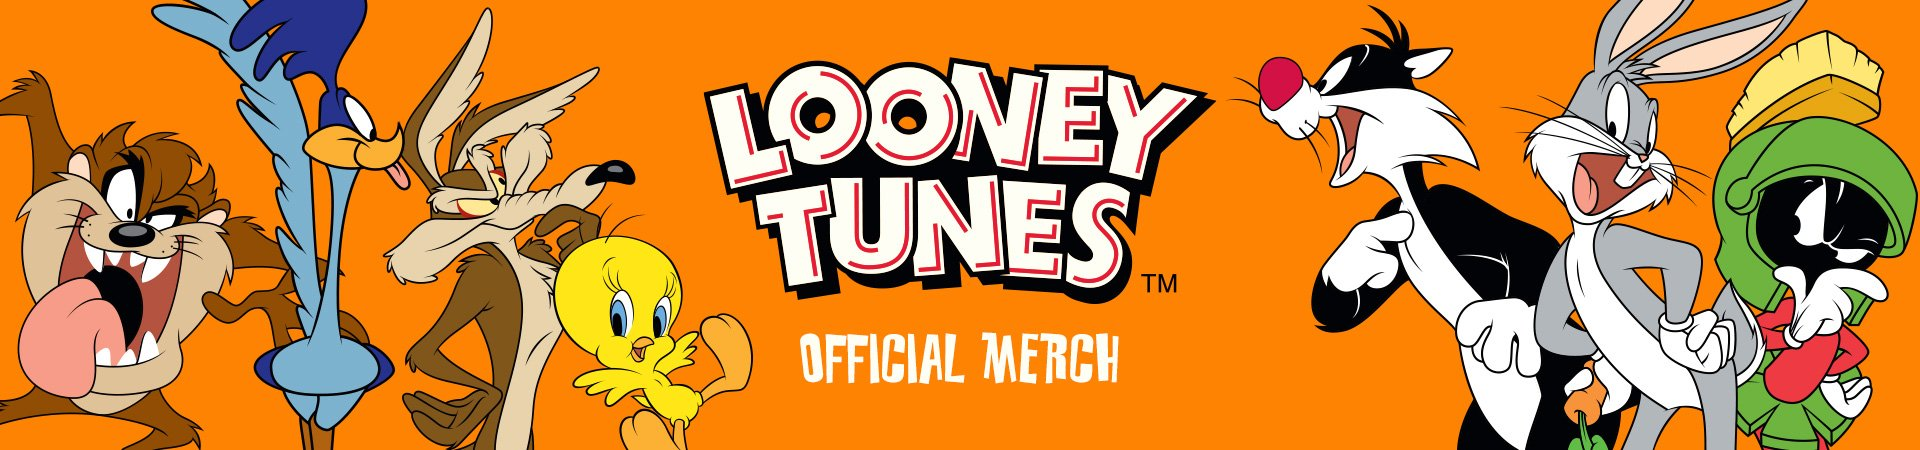 Looney Tunes - Official Merchandise